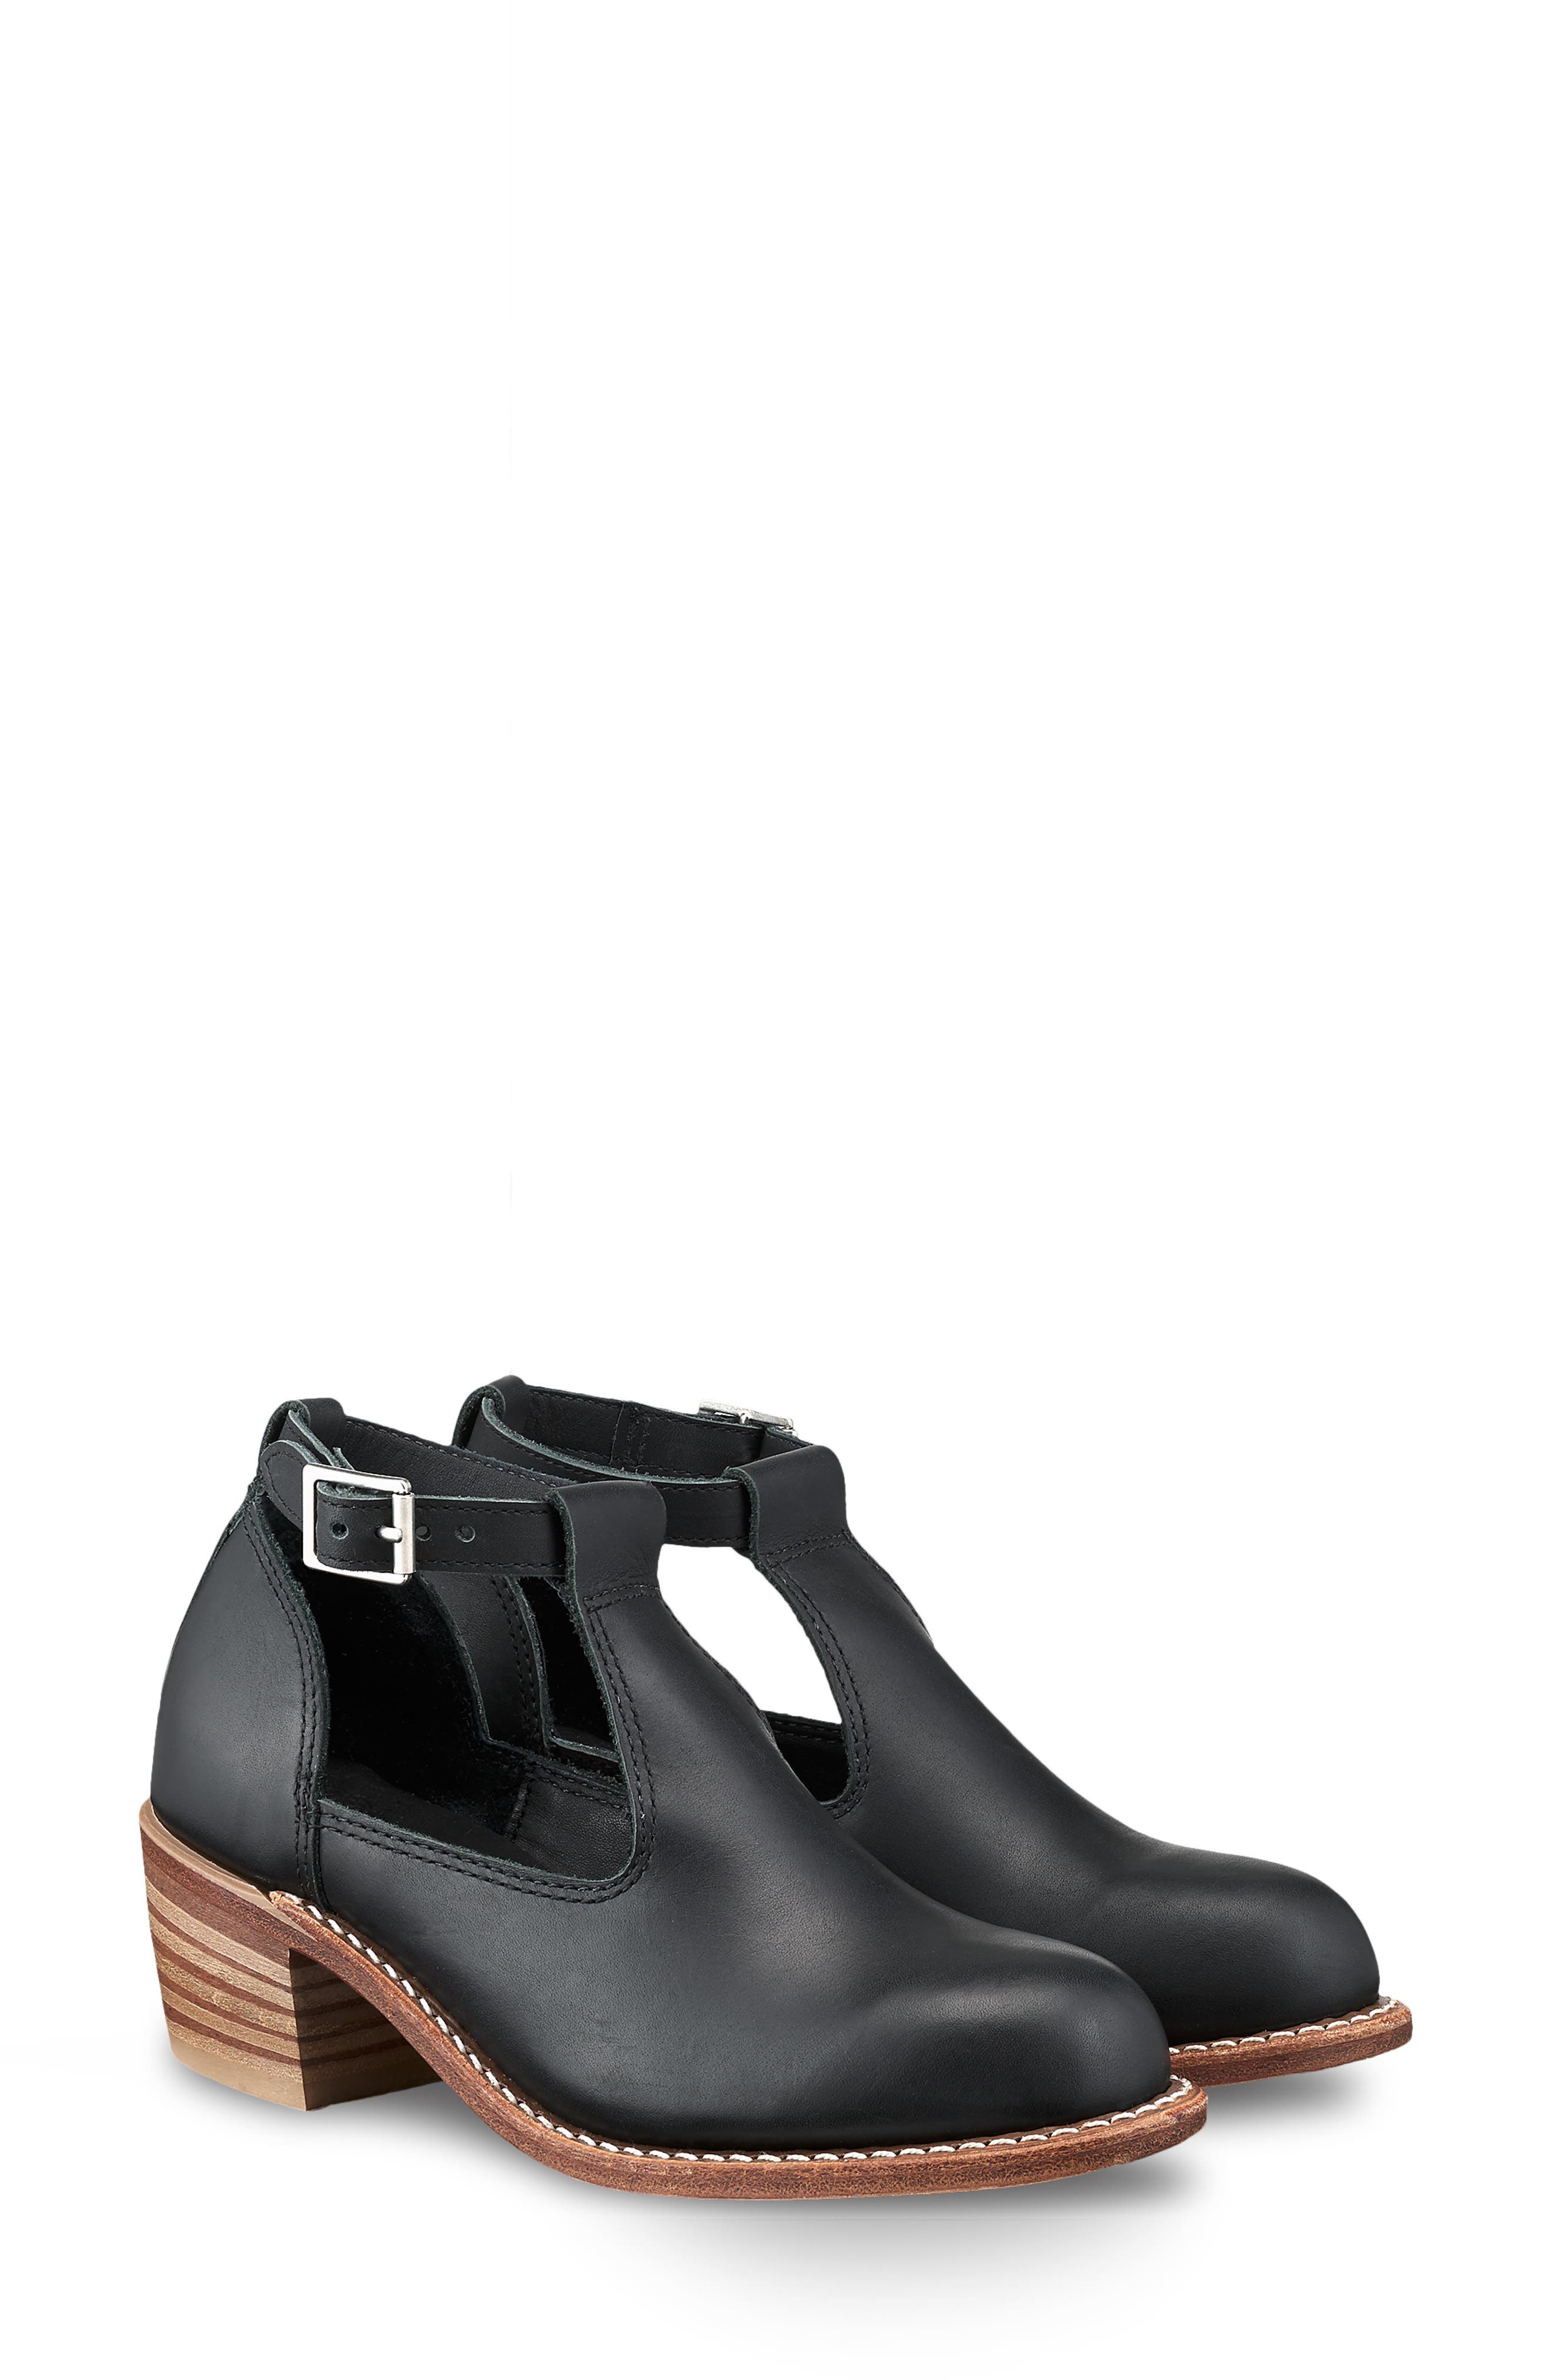 RED WING Ida Cutout Bootie, Main, color, BLACK BOUNDARY LEATHER